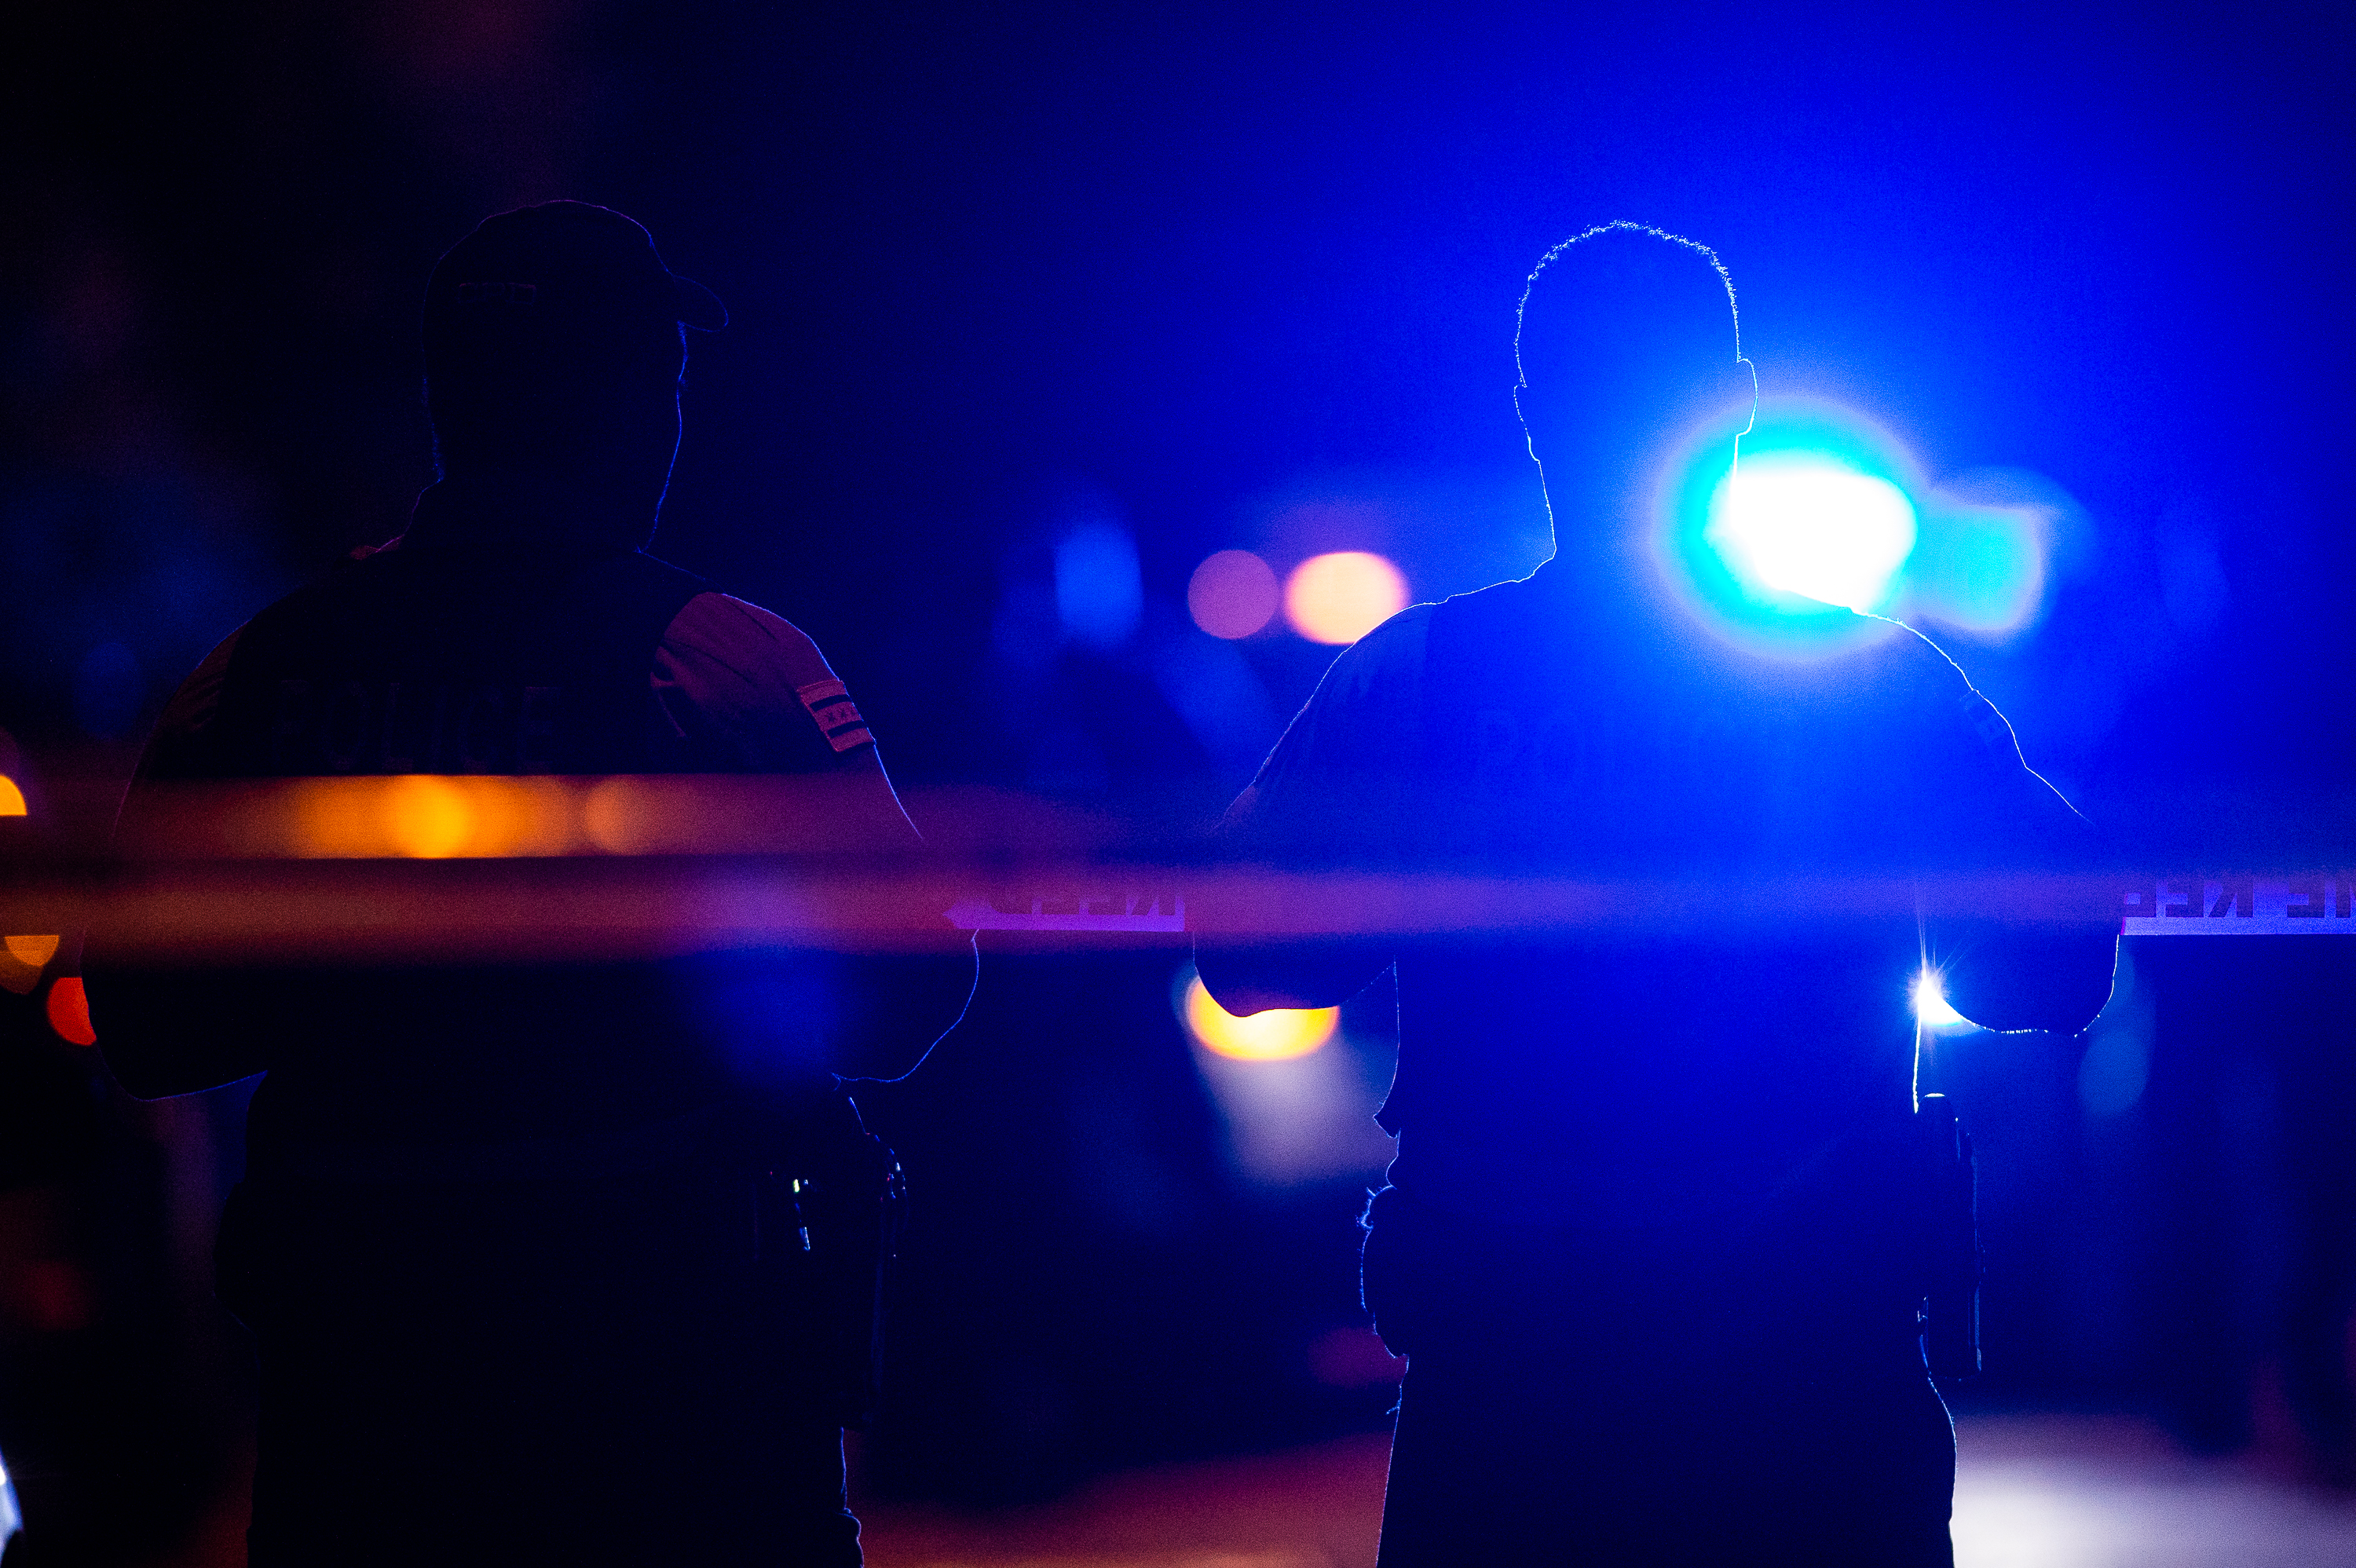 A man was killed in a shooting Oct. 20, 2020, in the 4600 block of South Hermitage Avenue.